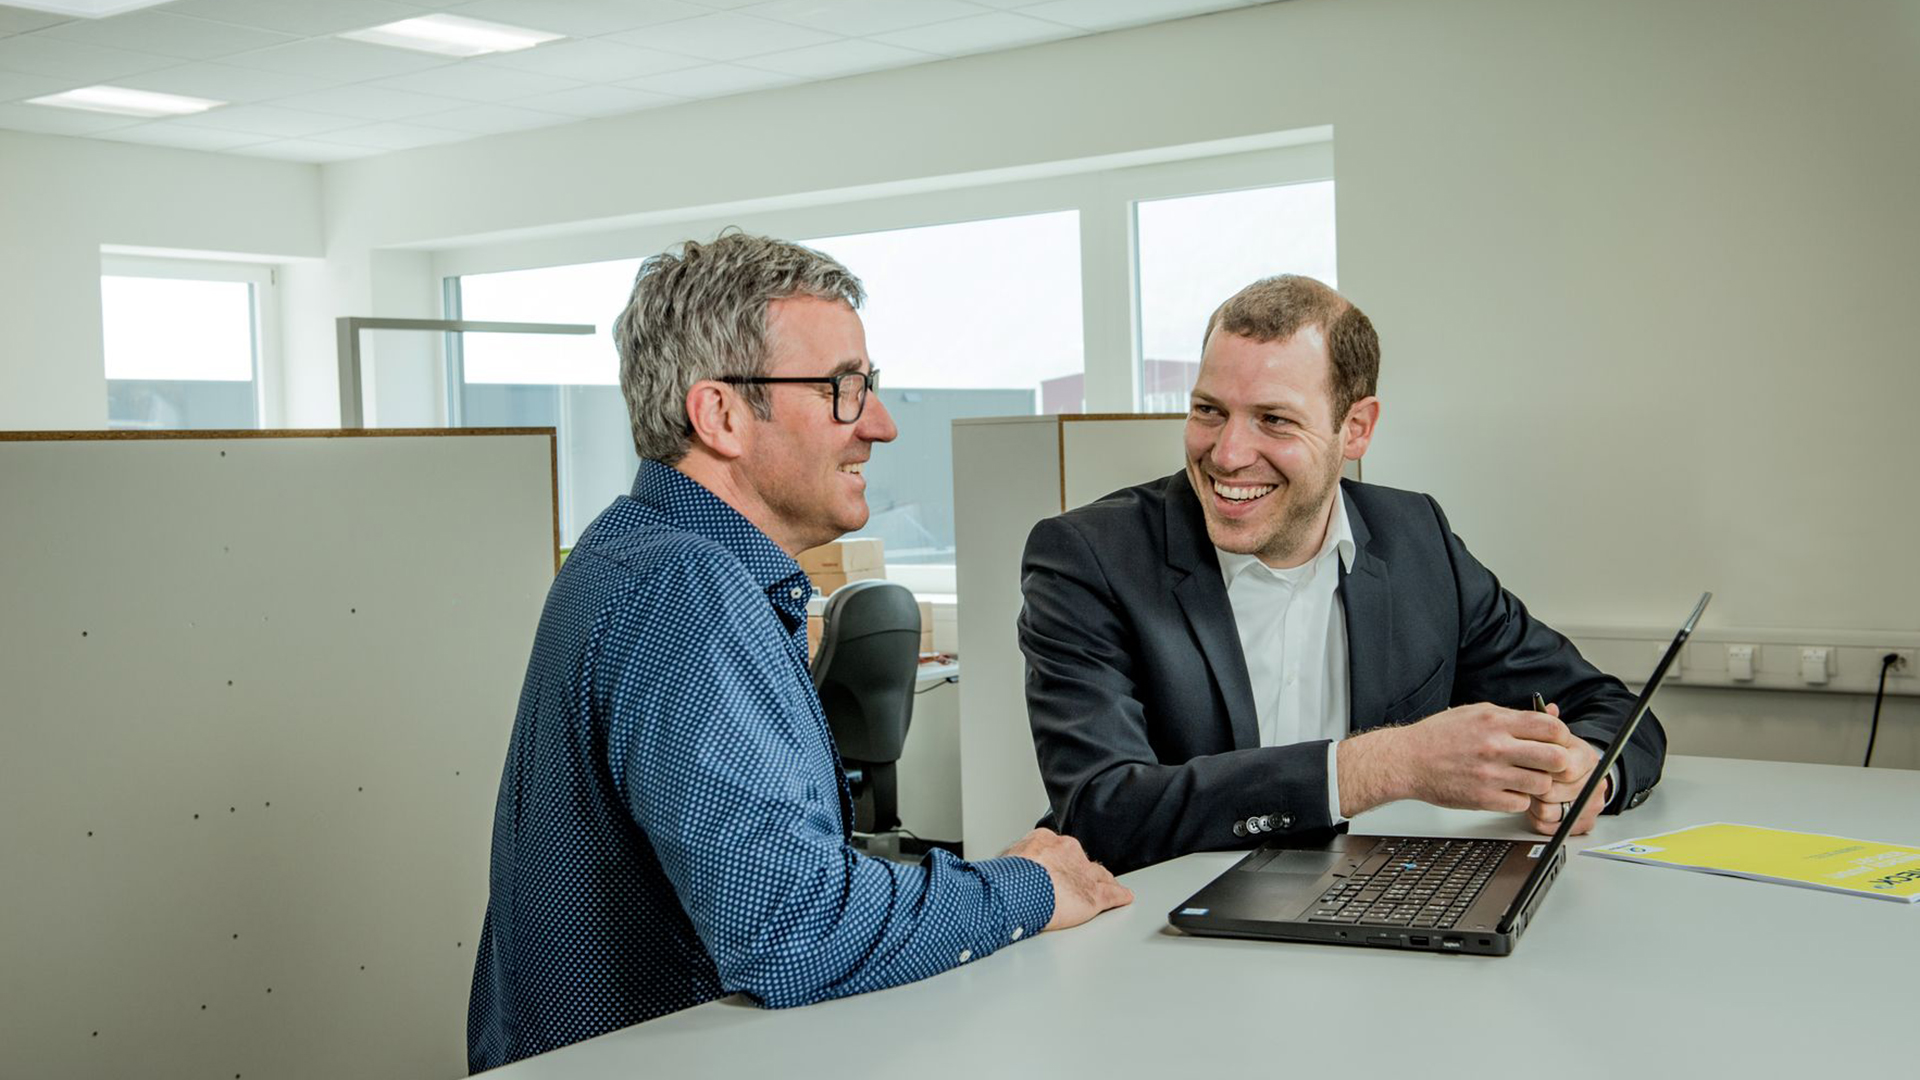 Two Bilfinger employees sit together at a desk with a laptop